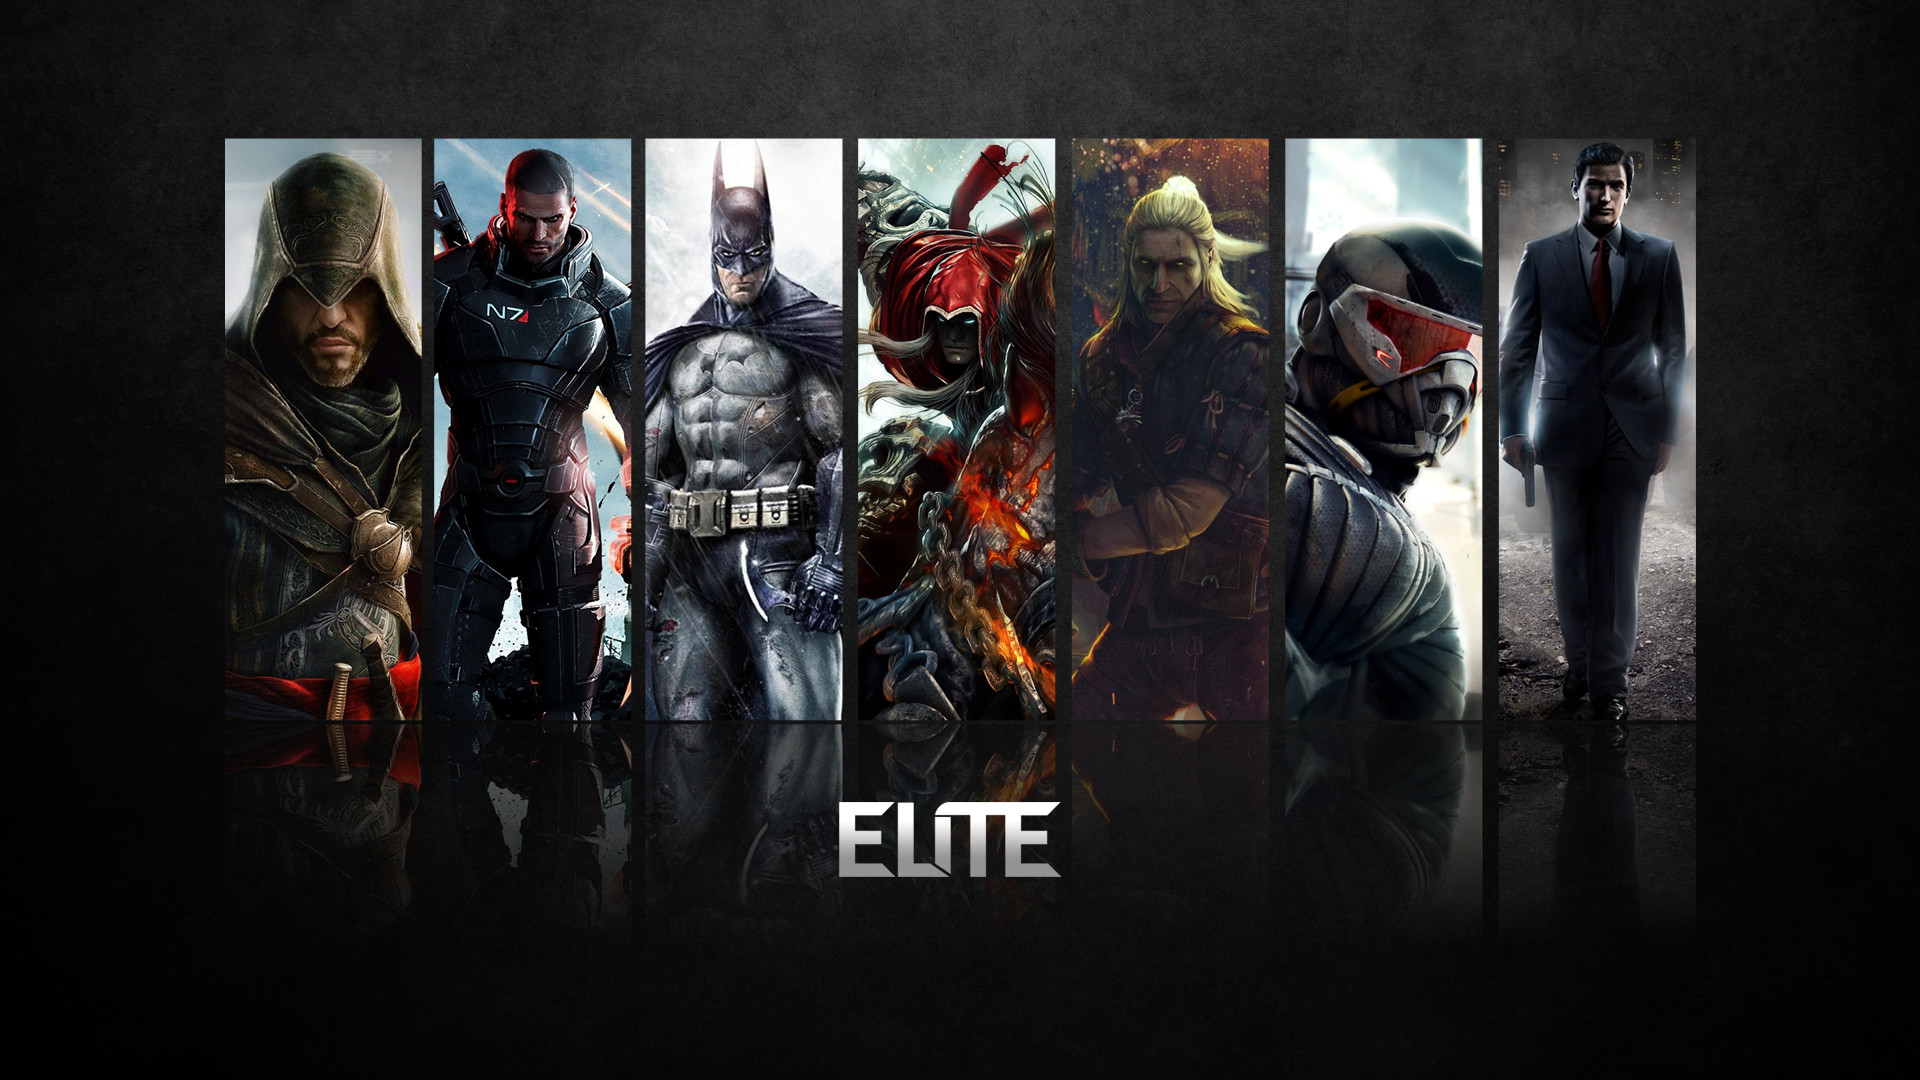 video games mass effect crysis the witcher darksiders arkham asylum mass  effect 2 assassins creed br High Quality Wallpapers,High Definition  Wallpapers